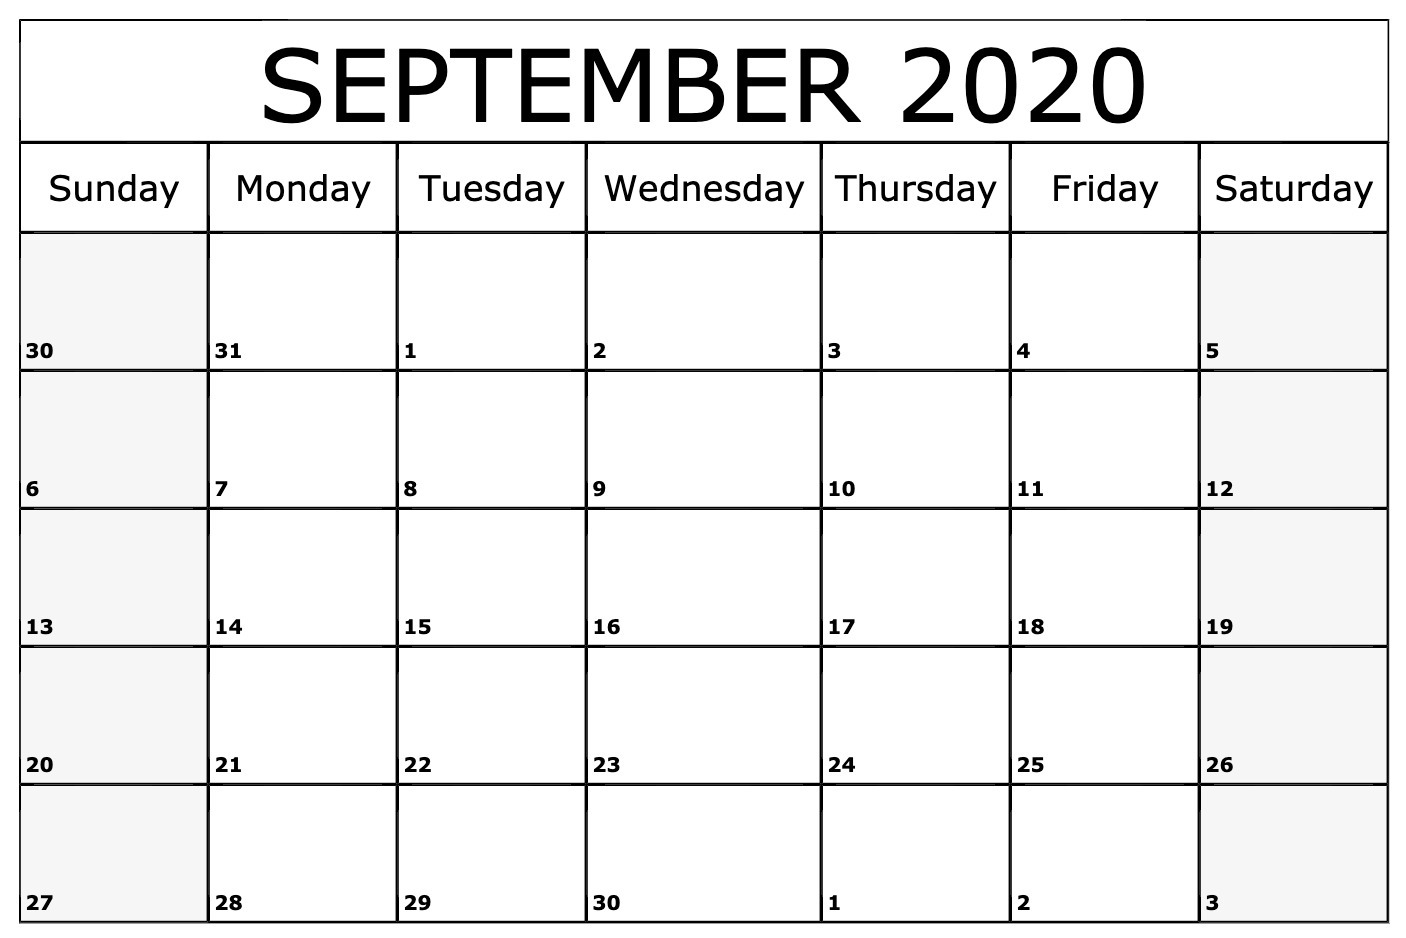 September Calendar 2020 Printable Template